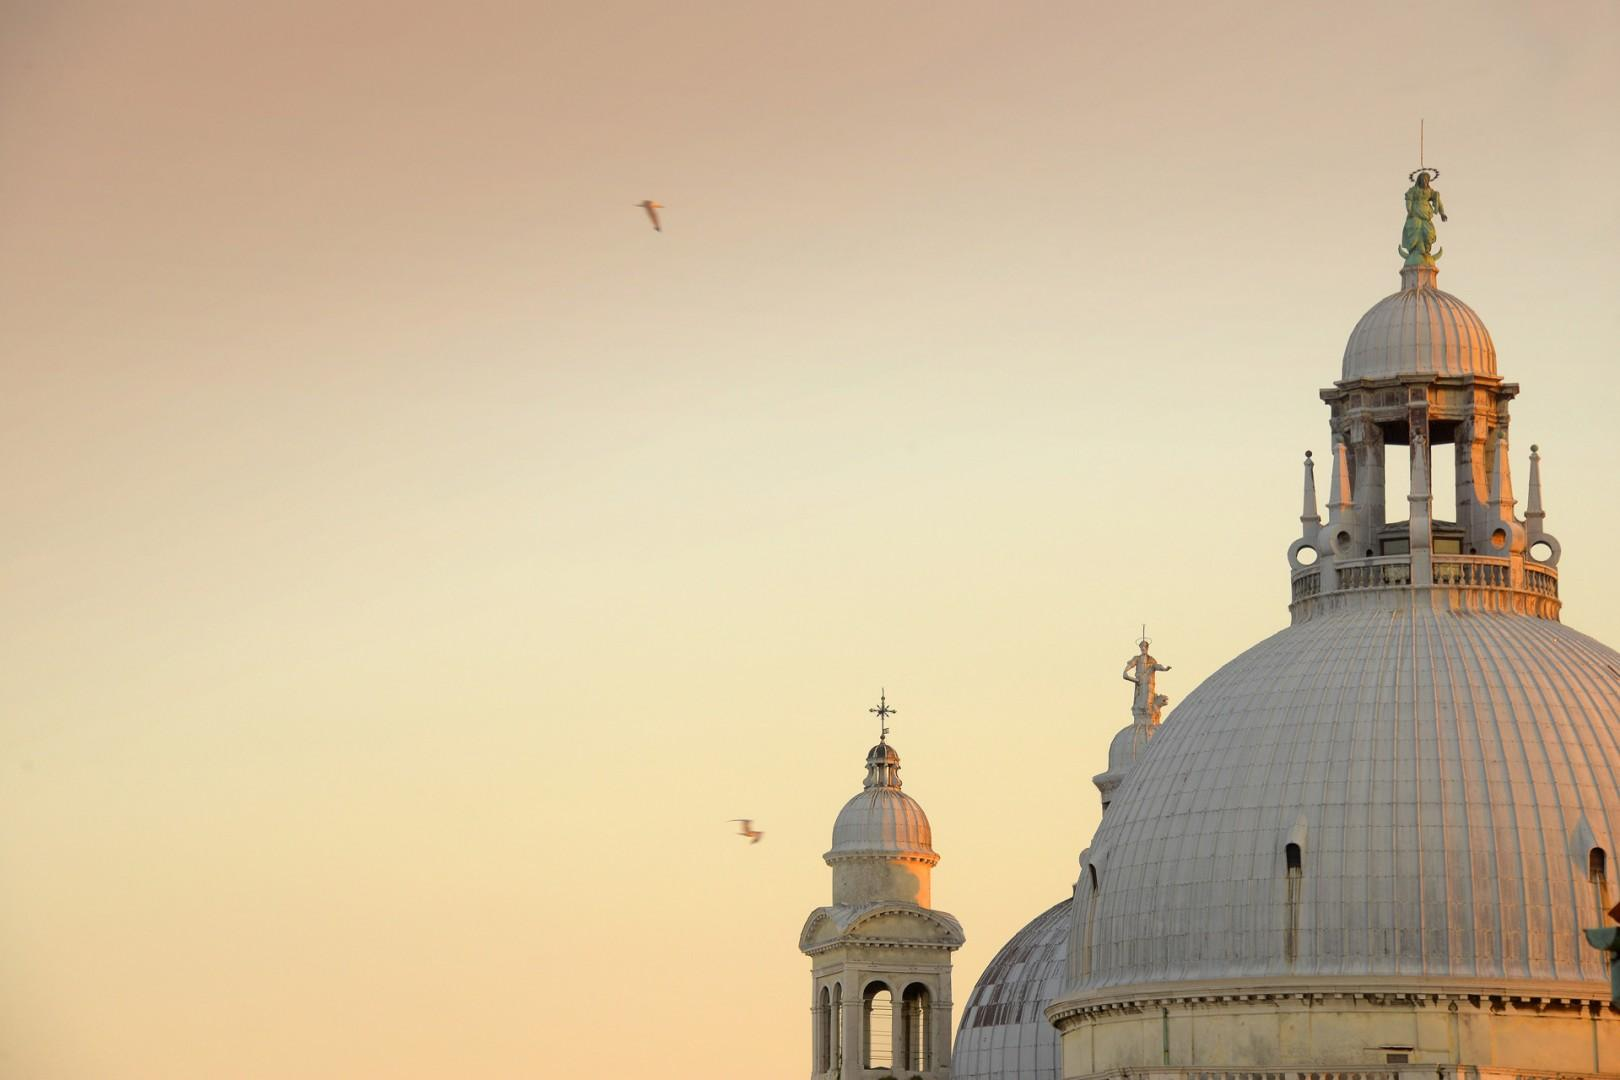 The cupola of Santa Maria Salute, across the grand canal peeks over the roof.